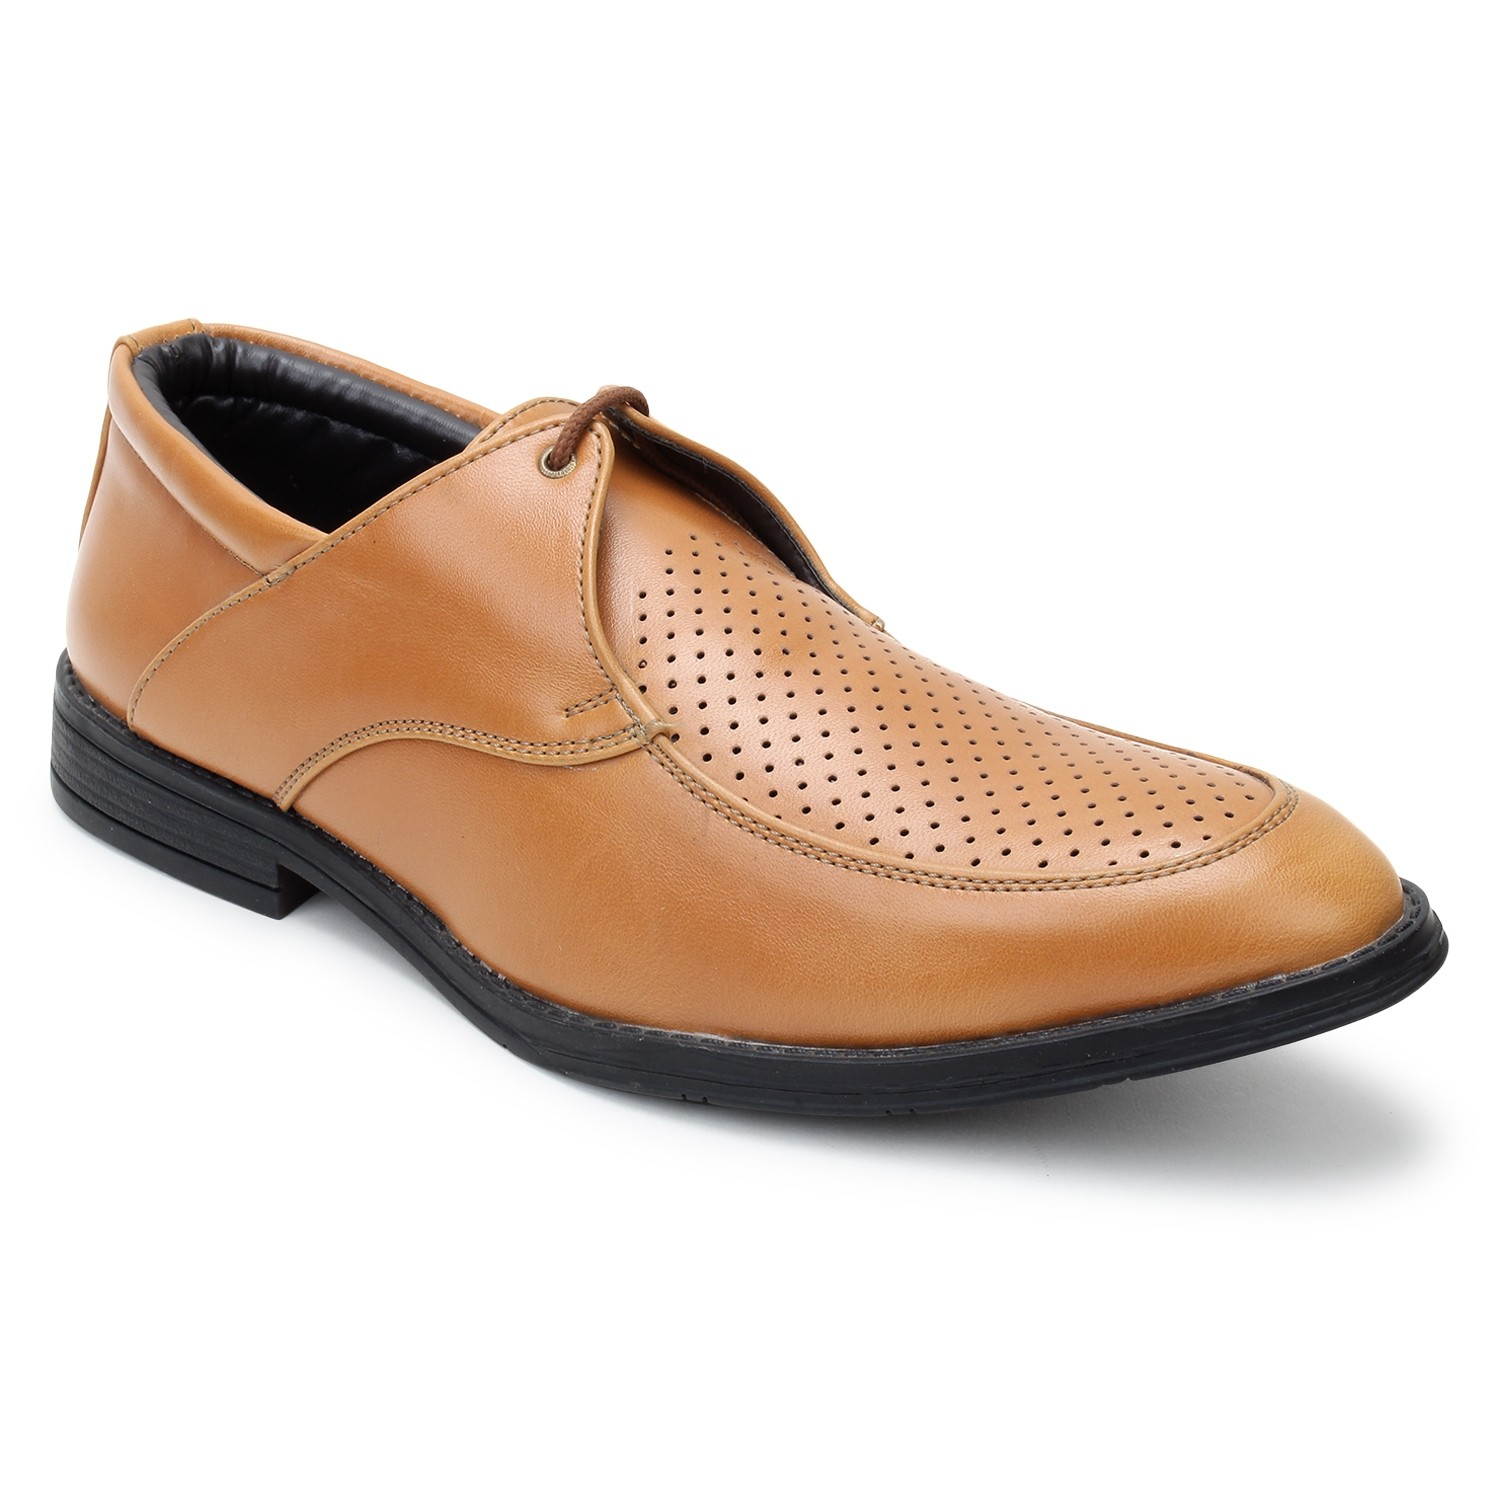 Leatherite Shoes Tan